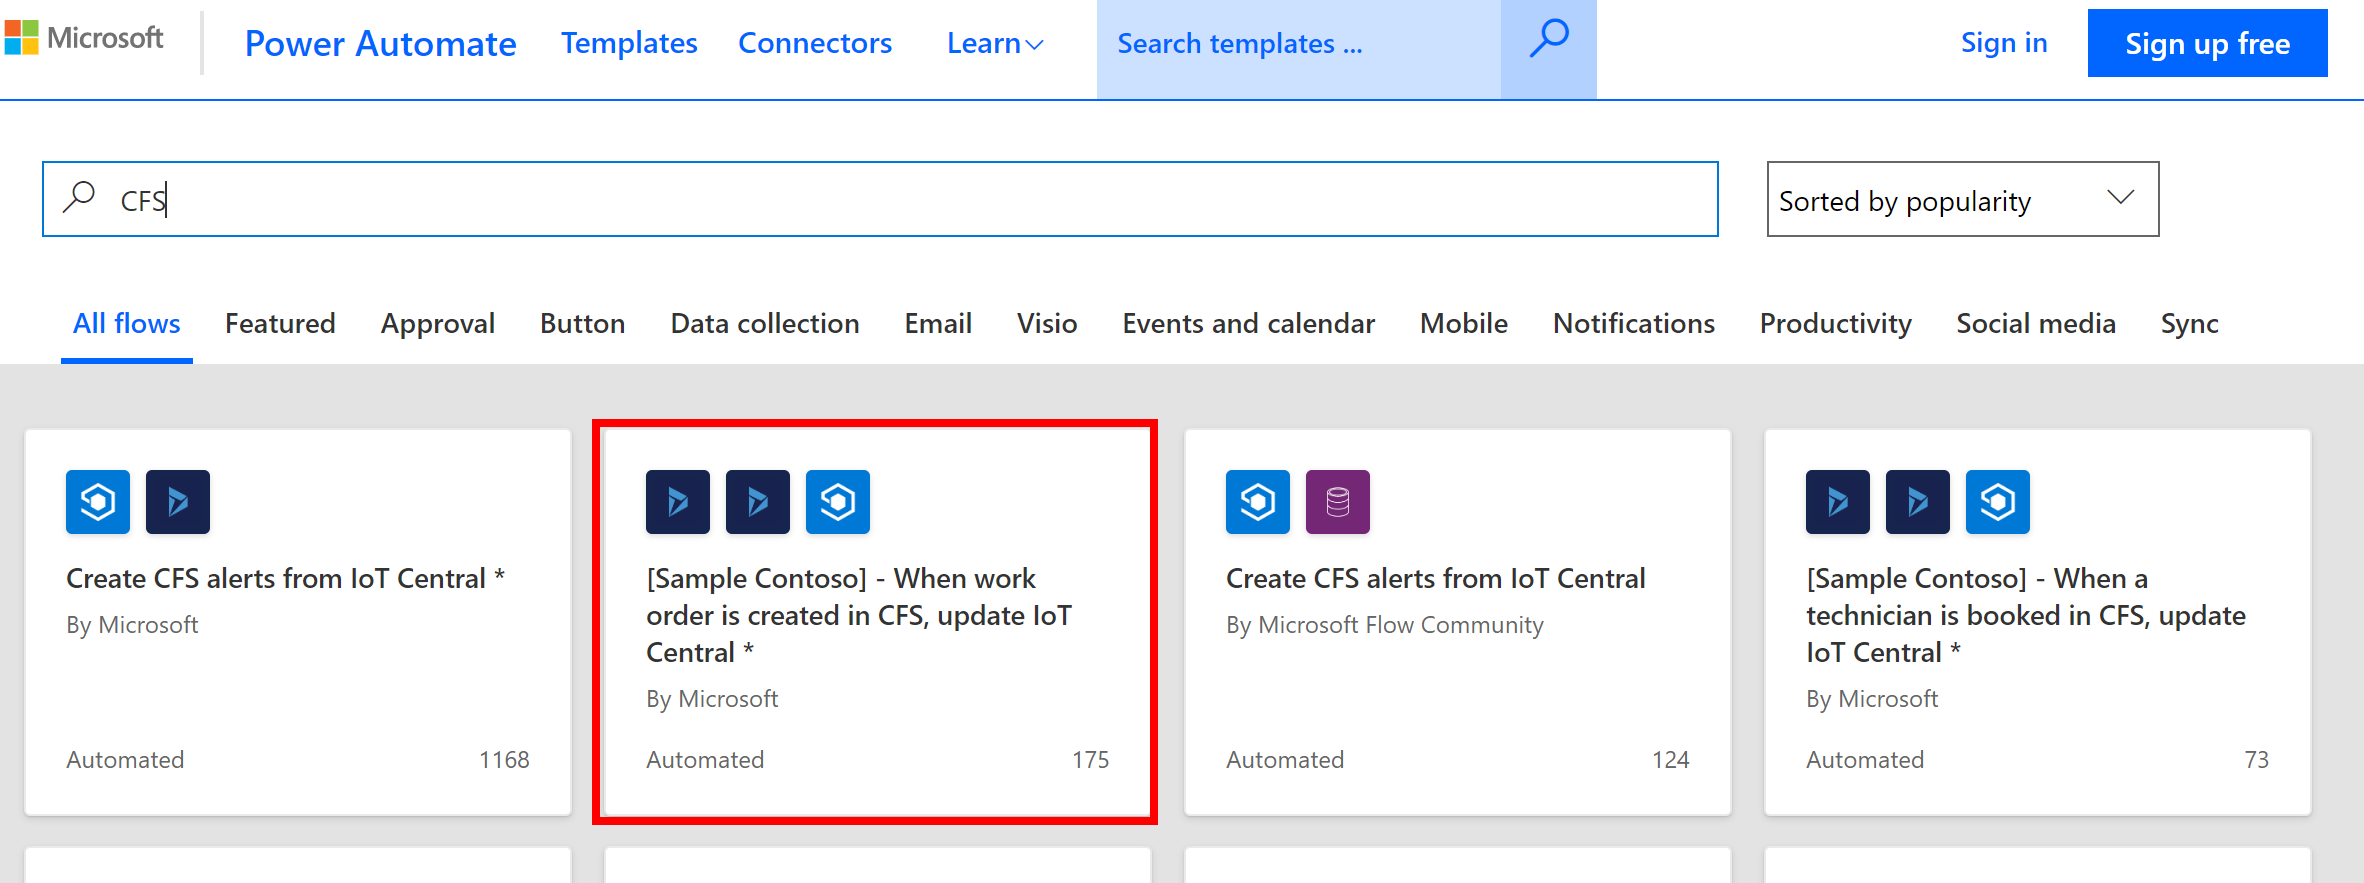 Send work order updates to IoT Central | Microsoft Docs